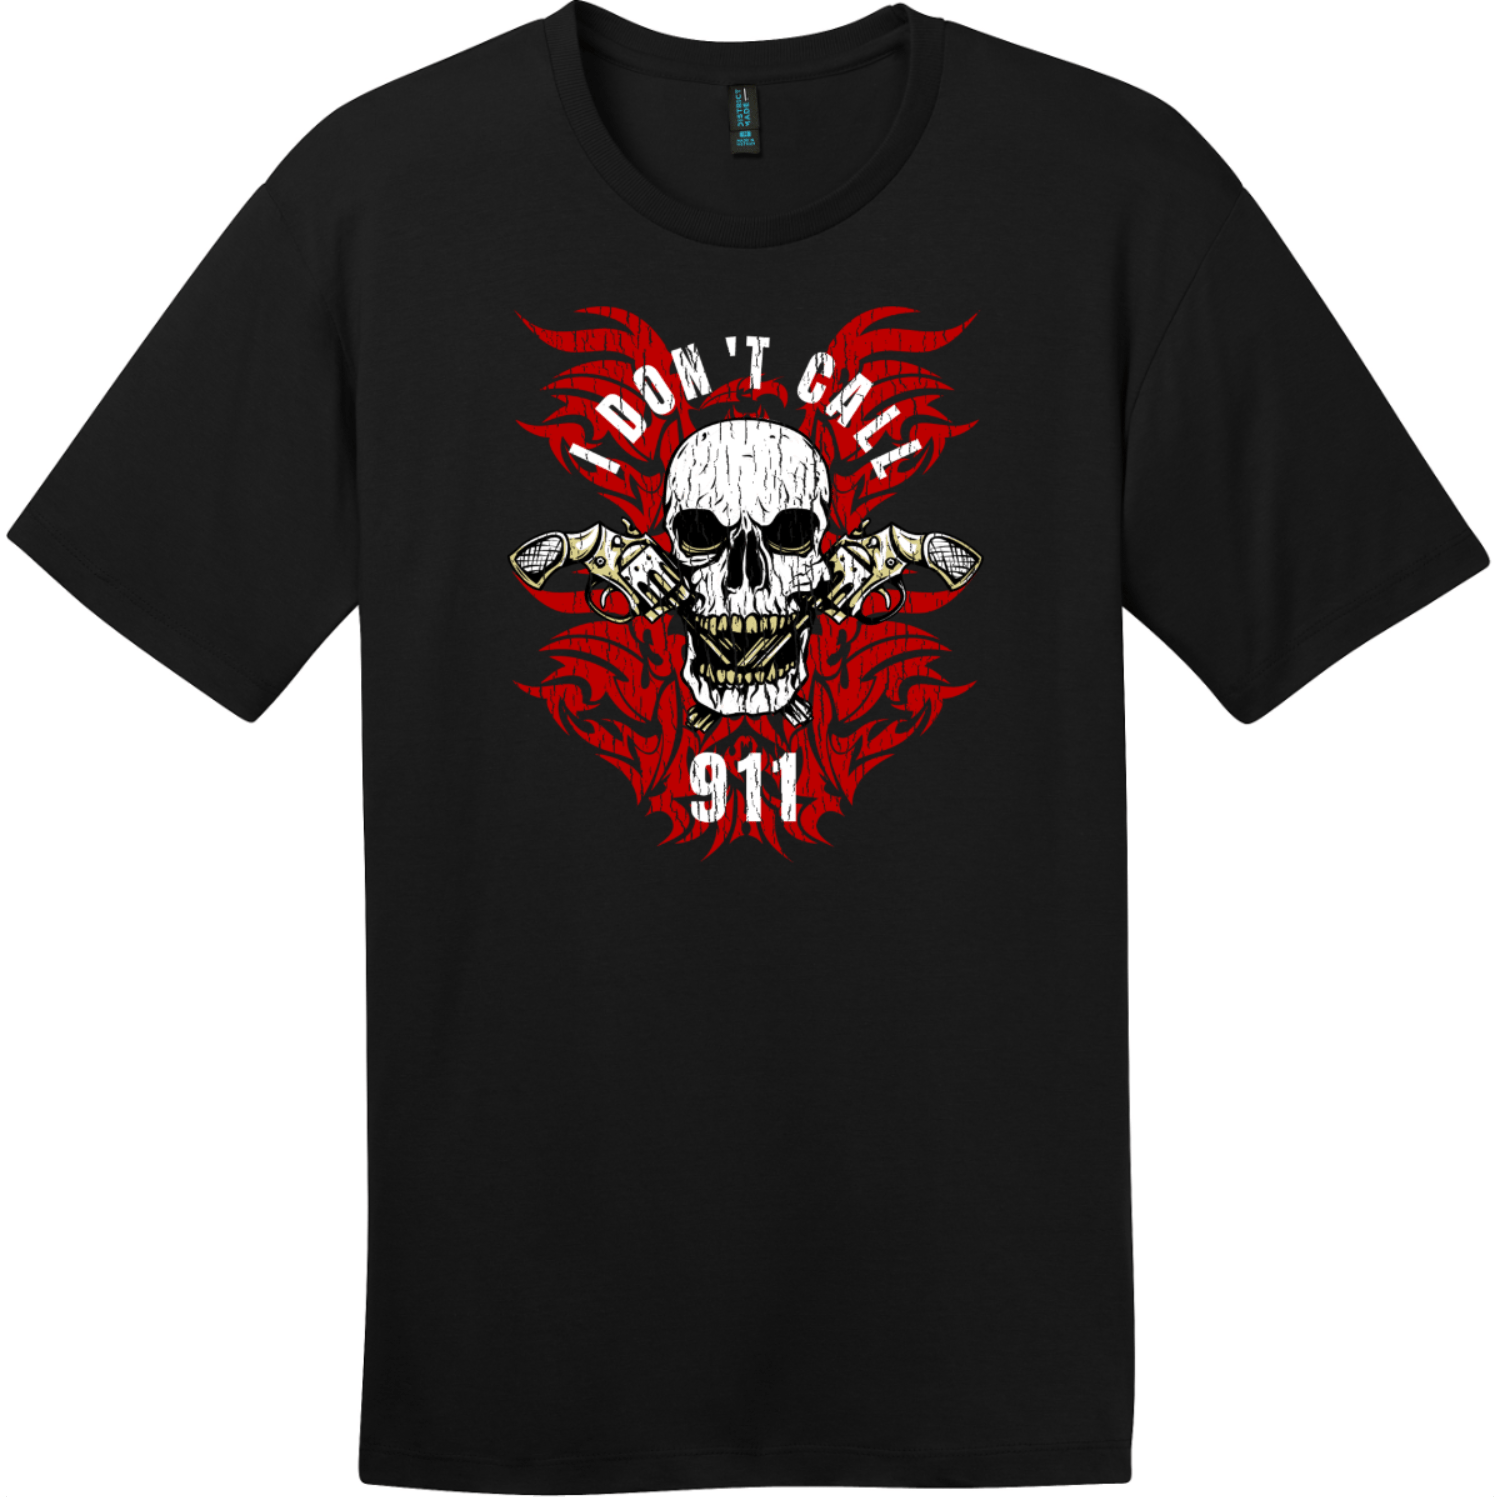 I Dont Call 911 T-Shirt Jet Black District Perfect Weight Tee DT104